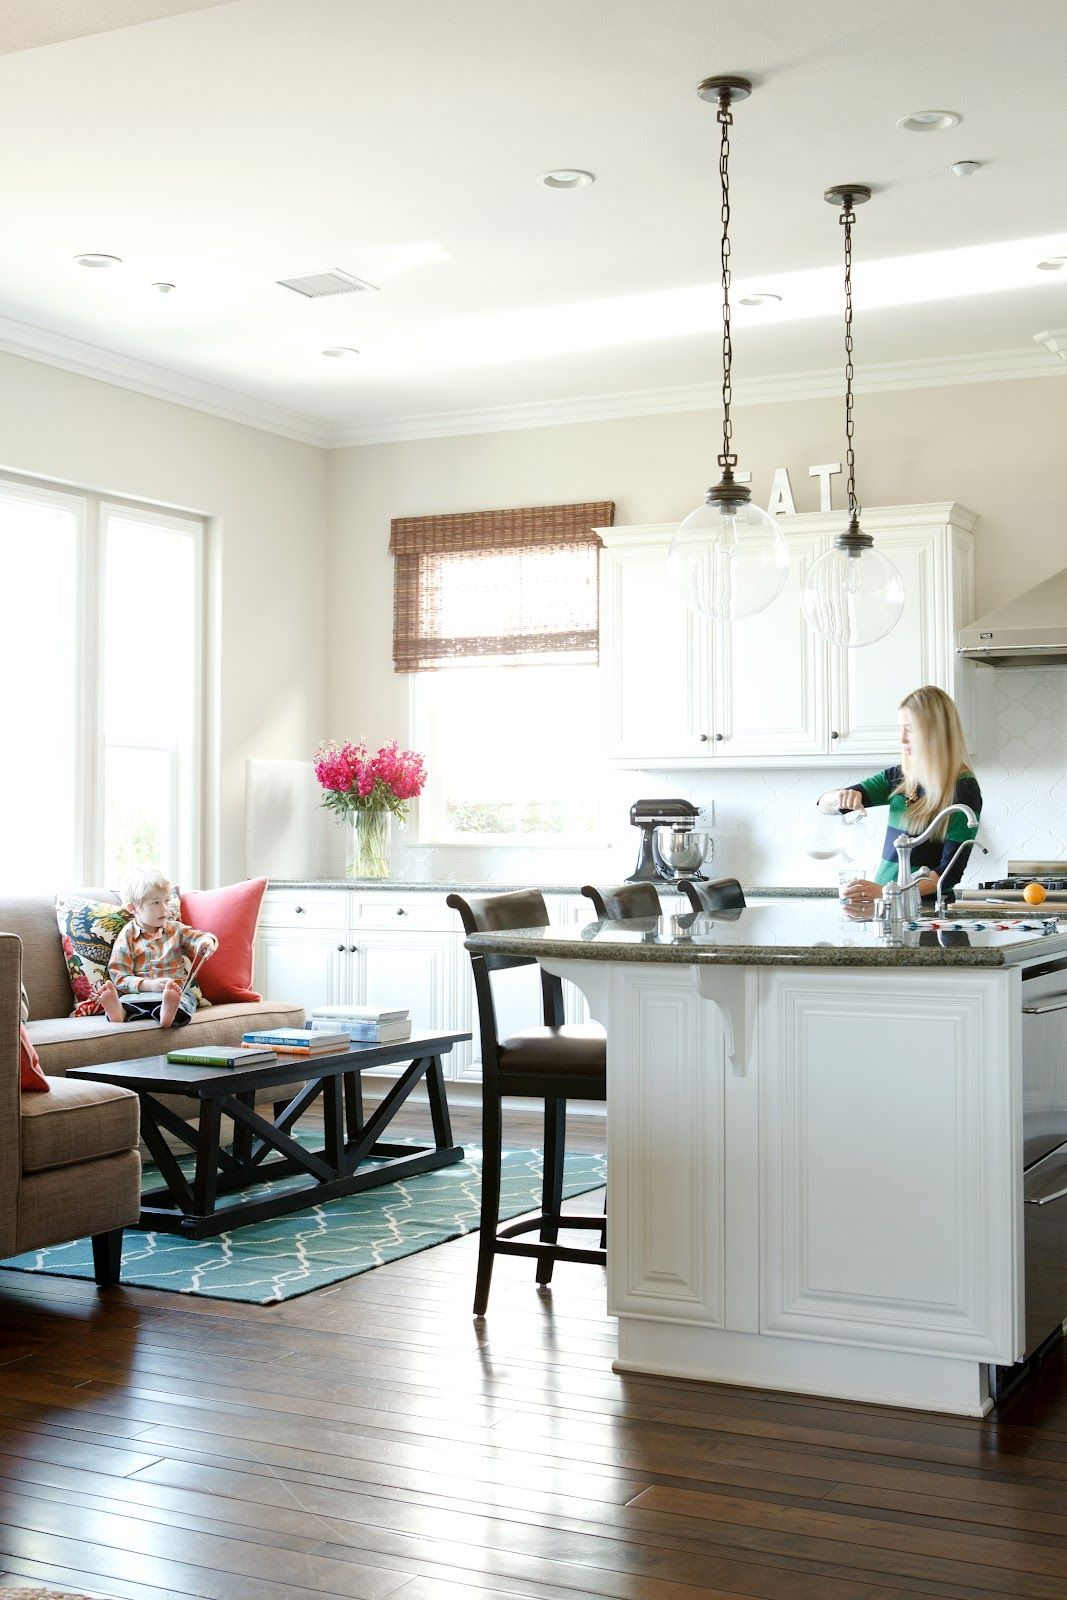 This reminds me of the layout of our kitchen/nook. Use of nook as ...